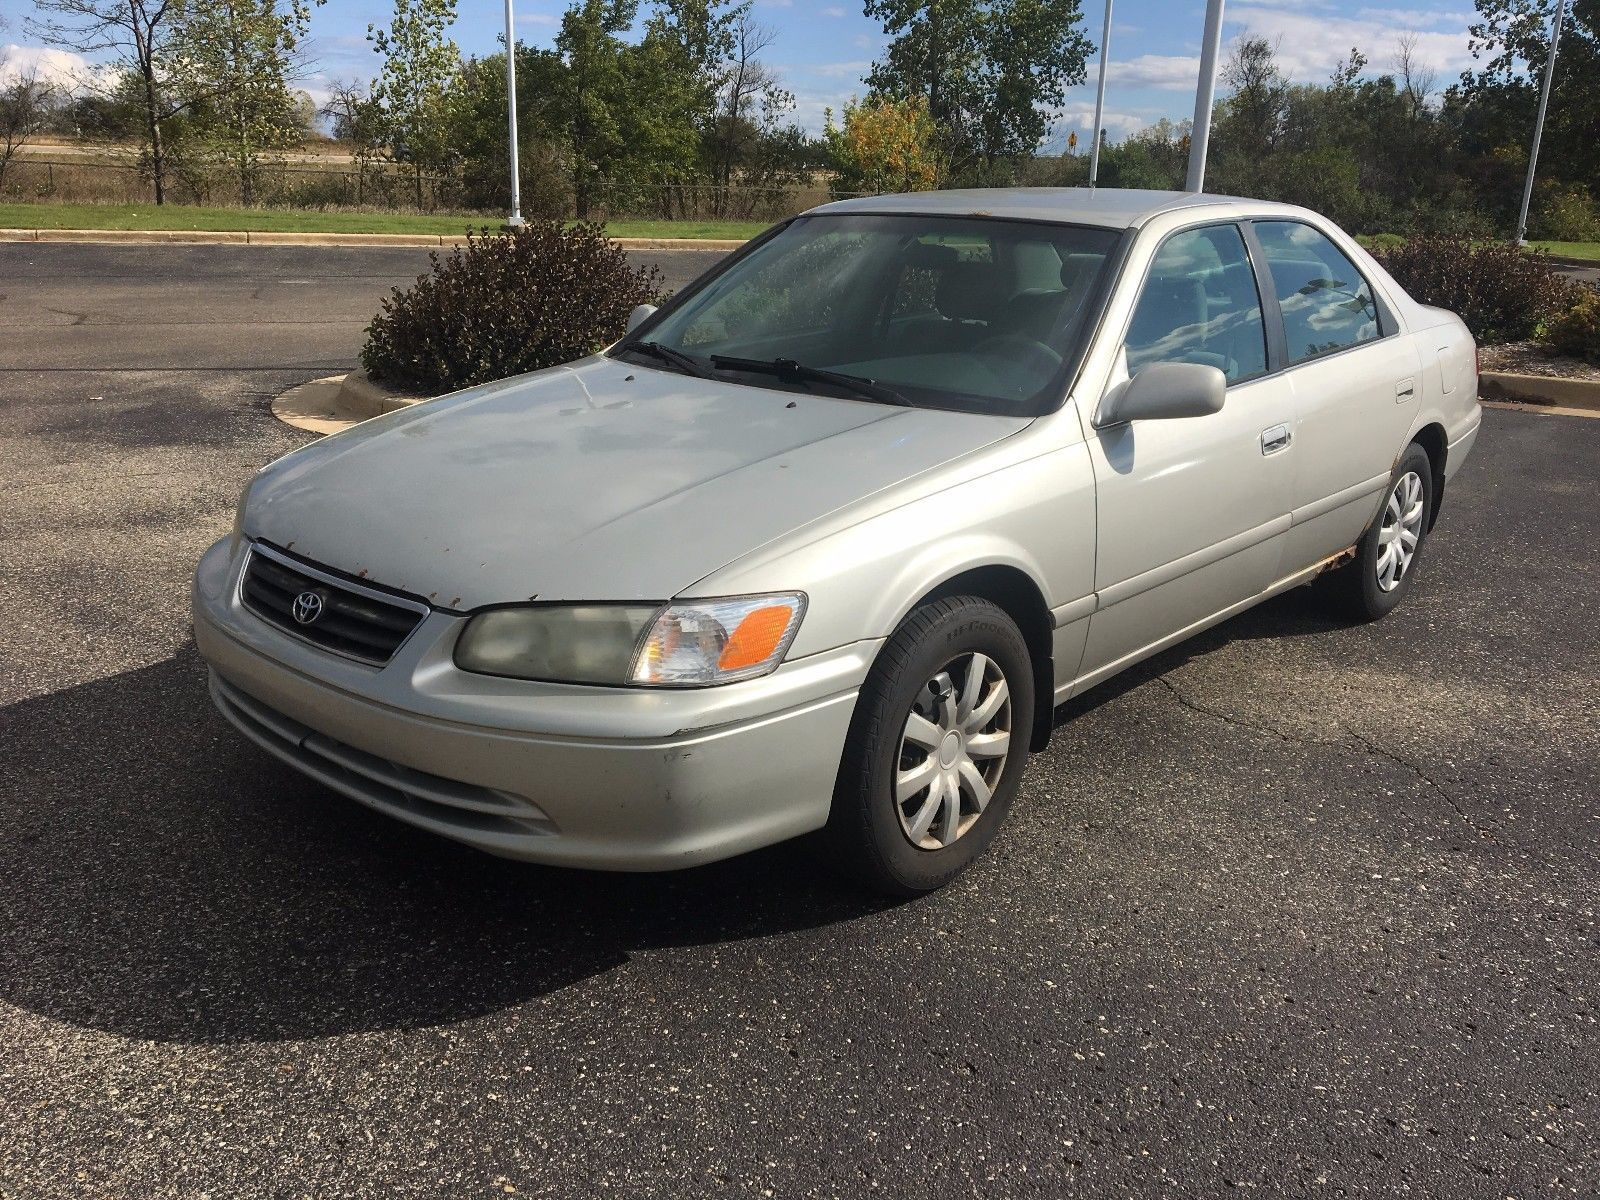 Cool Great 2001 Toyota Camry Ce No Reserve Engine Problems Fixer Upper As Is 2018